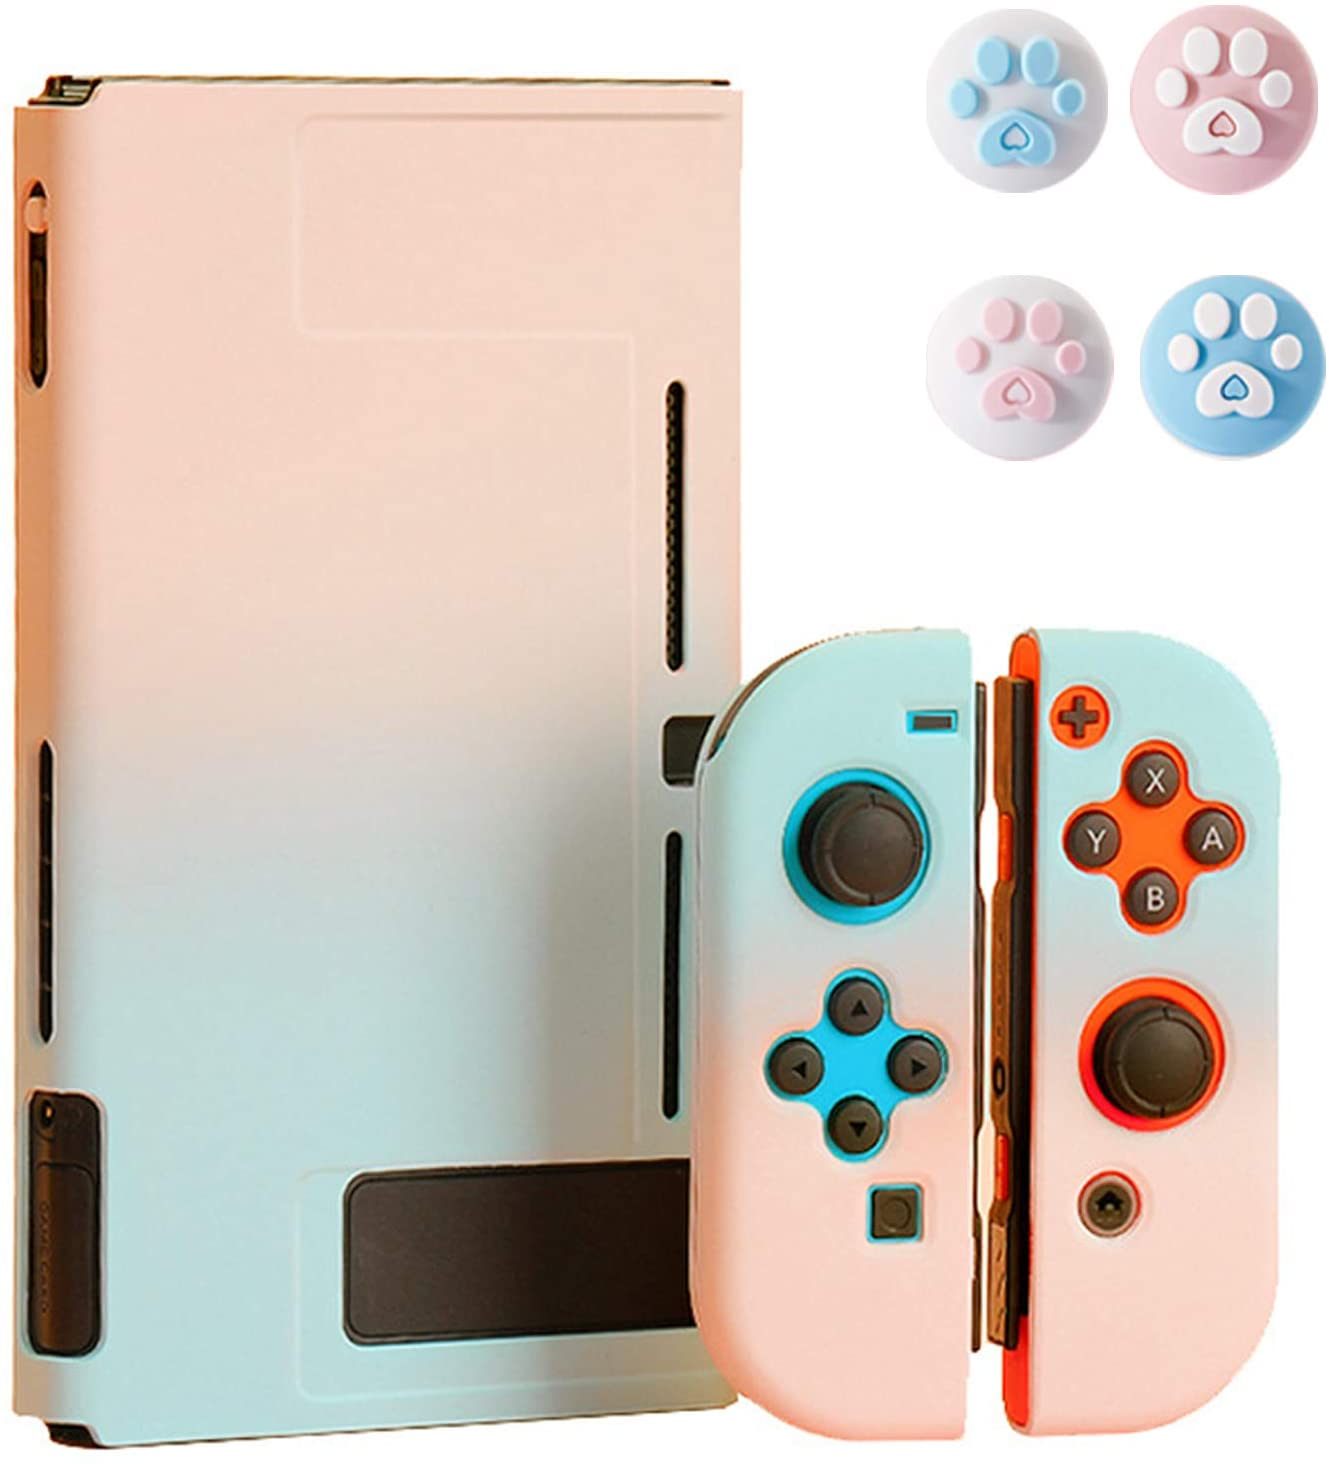 Protective Case for Nintendo Switch with 4 Thumb Grip Caps - Portable Unique Gradient Color Ultra Slim Carrying Case - fit for Nintendo Switch Console and Accessories